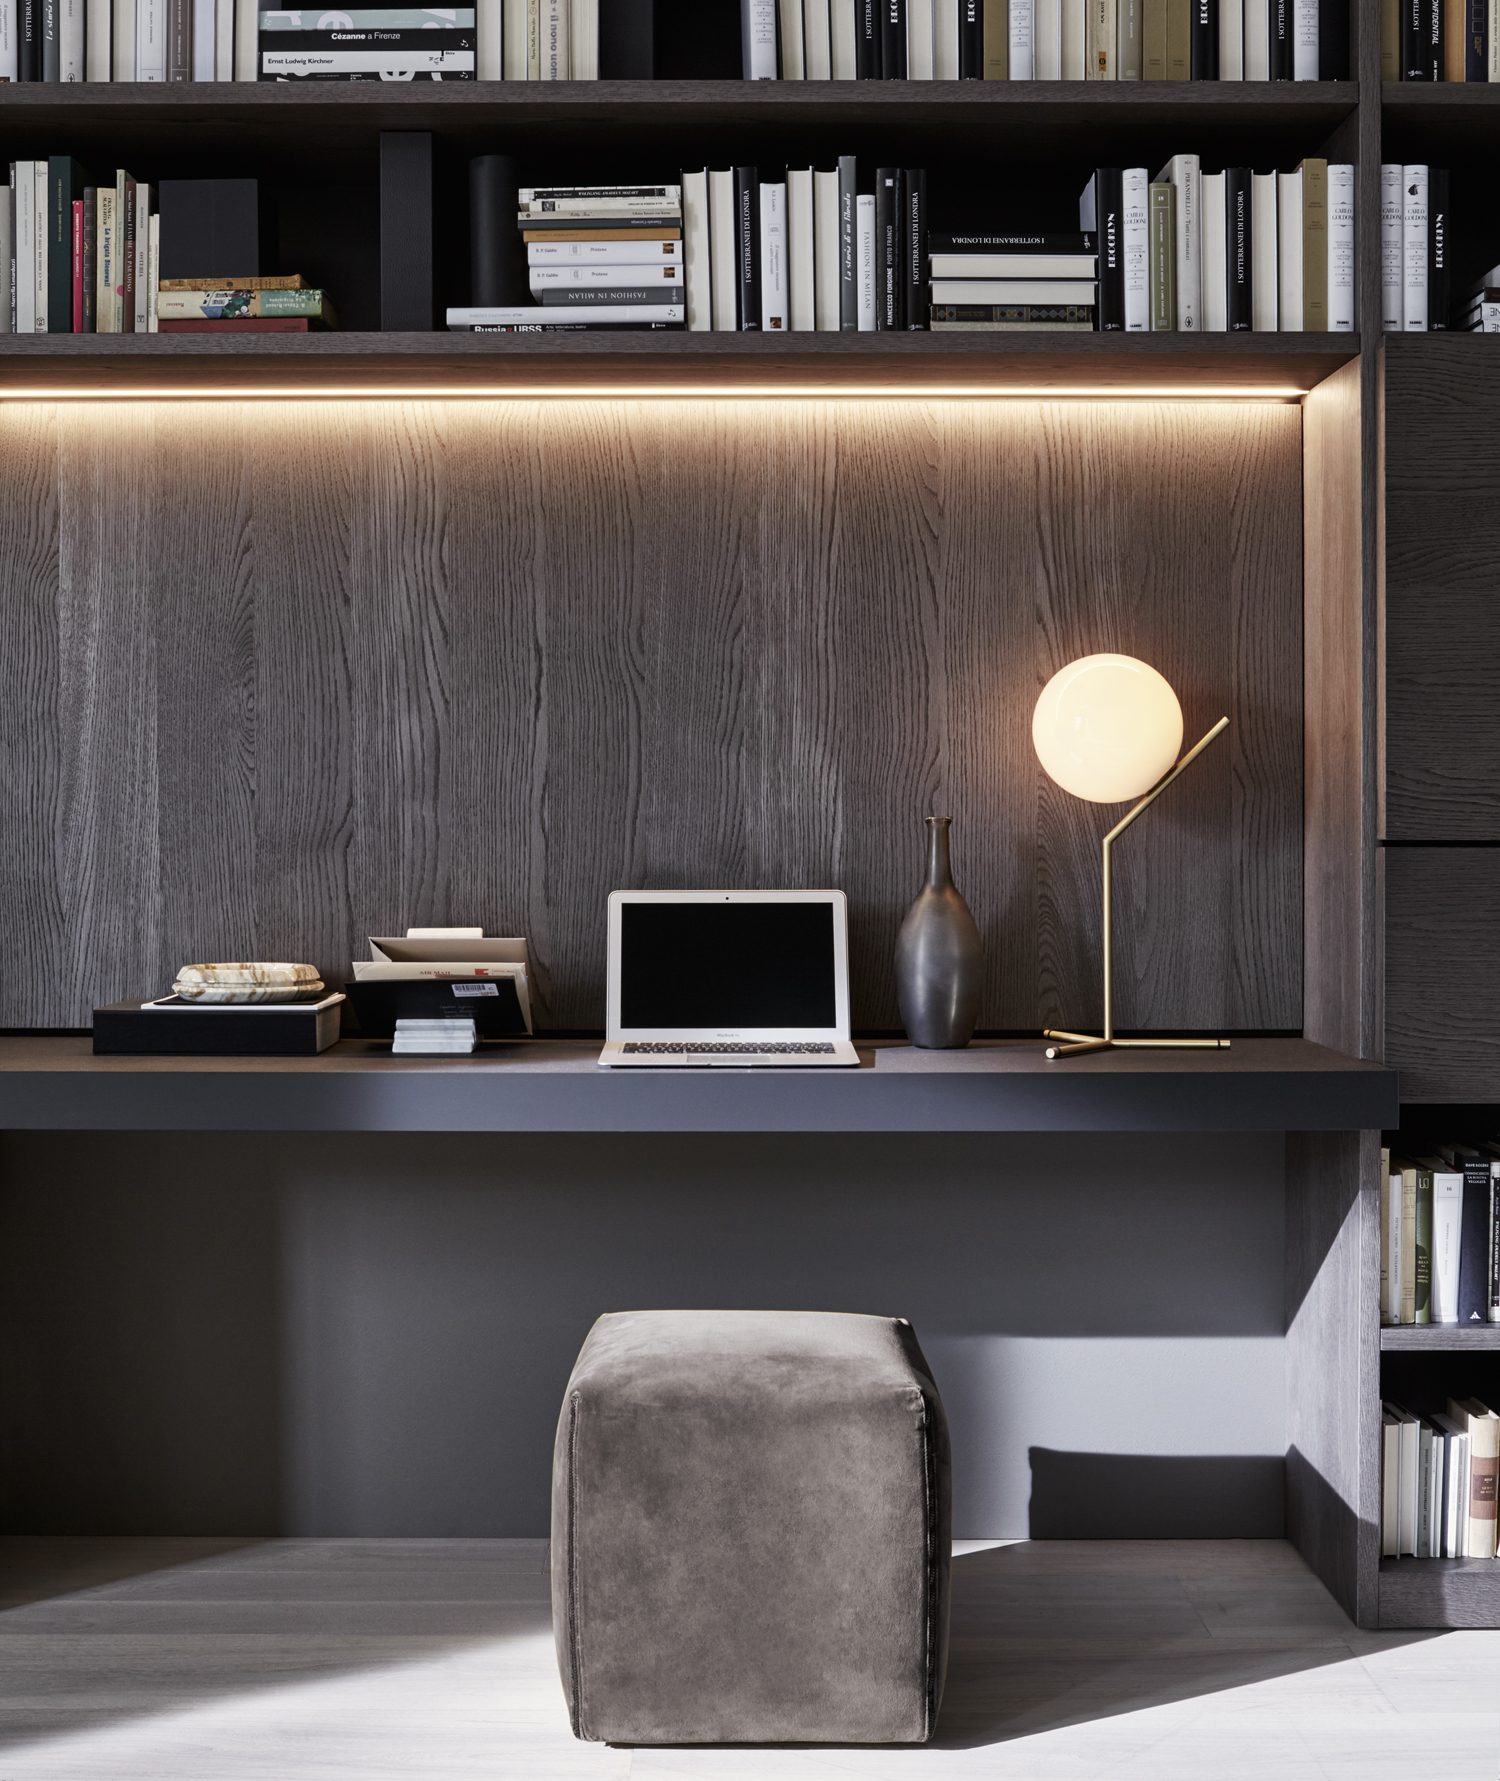 Molteni c 505 storage system buy from campbell watson for Molteni furniture